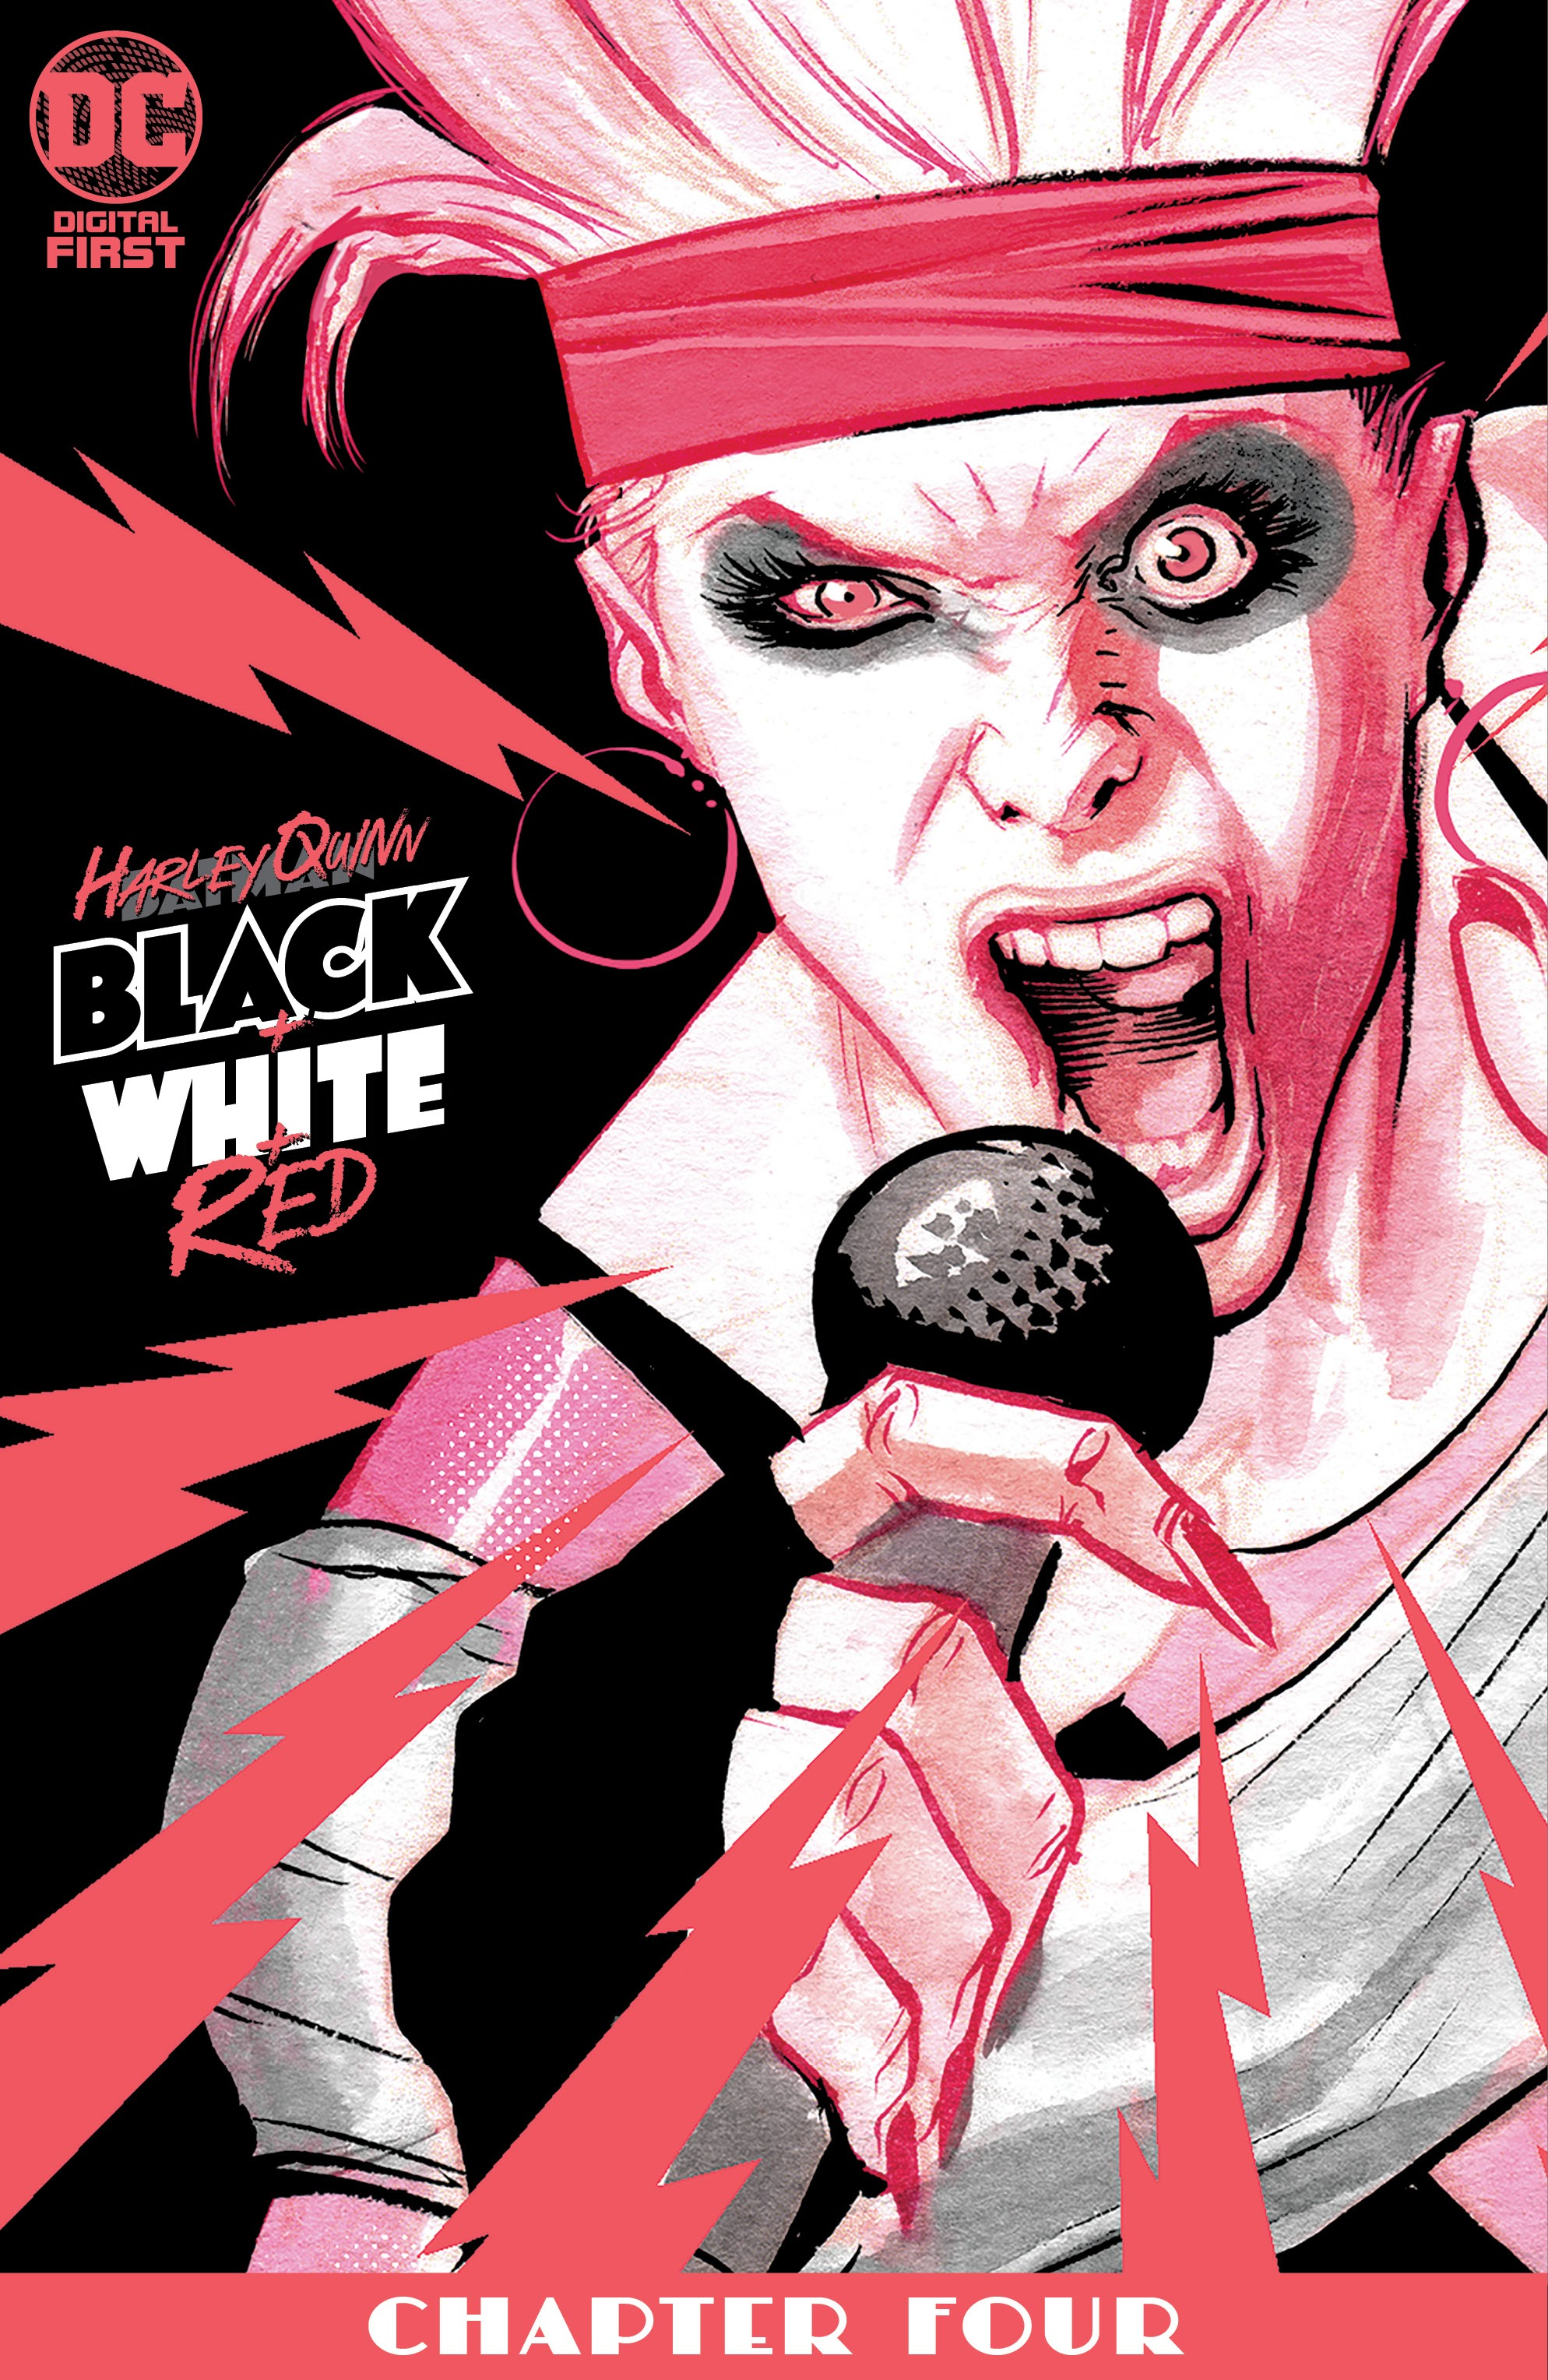 Harley Quinn: Black + White + Red Vol 1 4 (Digital)